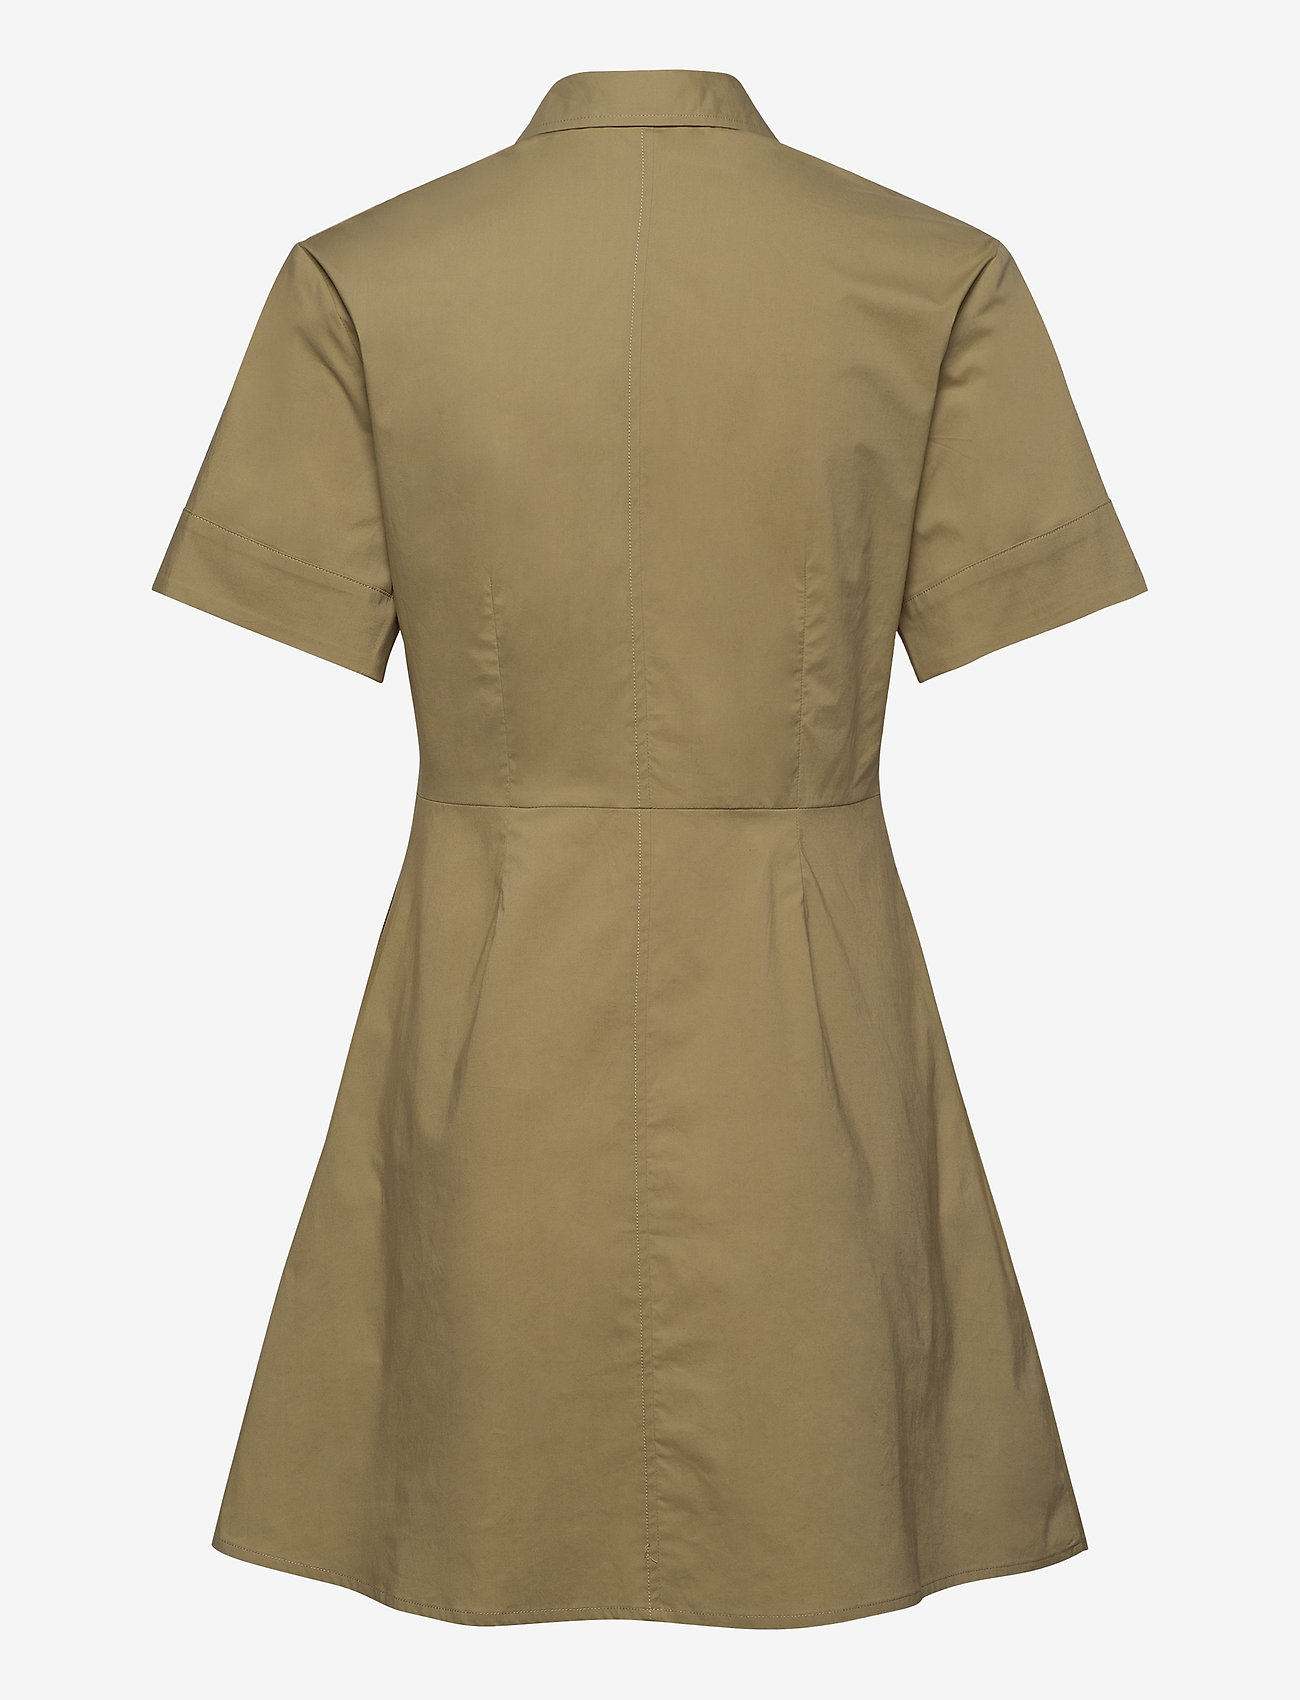 Samsøe Samsøe - Barbara short dress 10783 - skjortekjoler - olive grey - 1